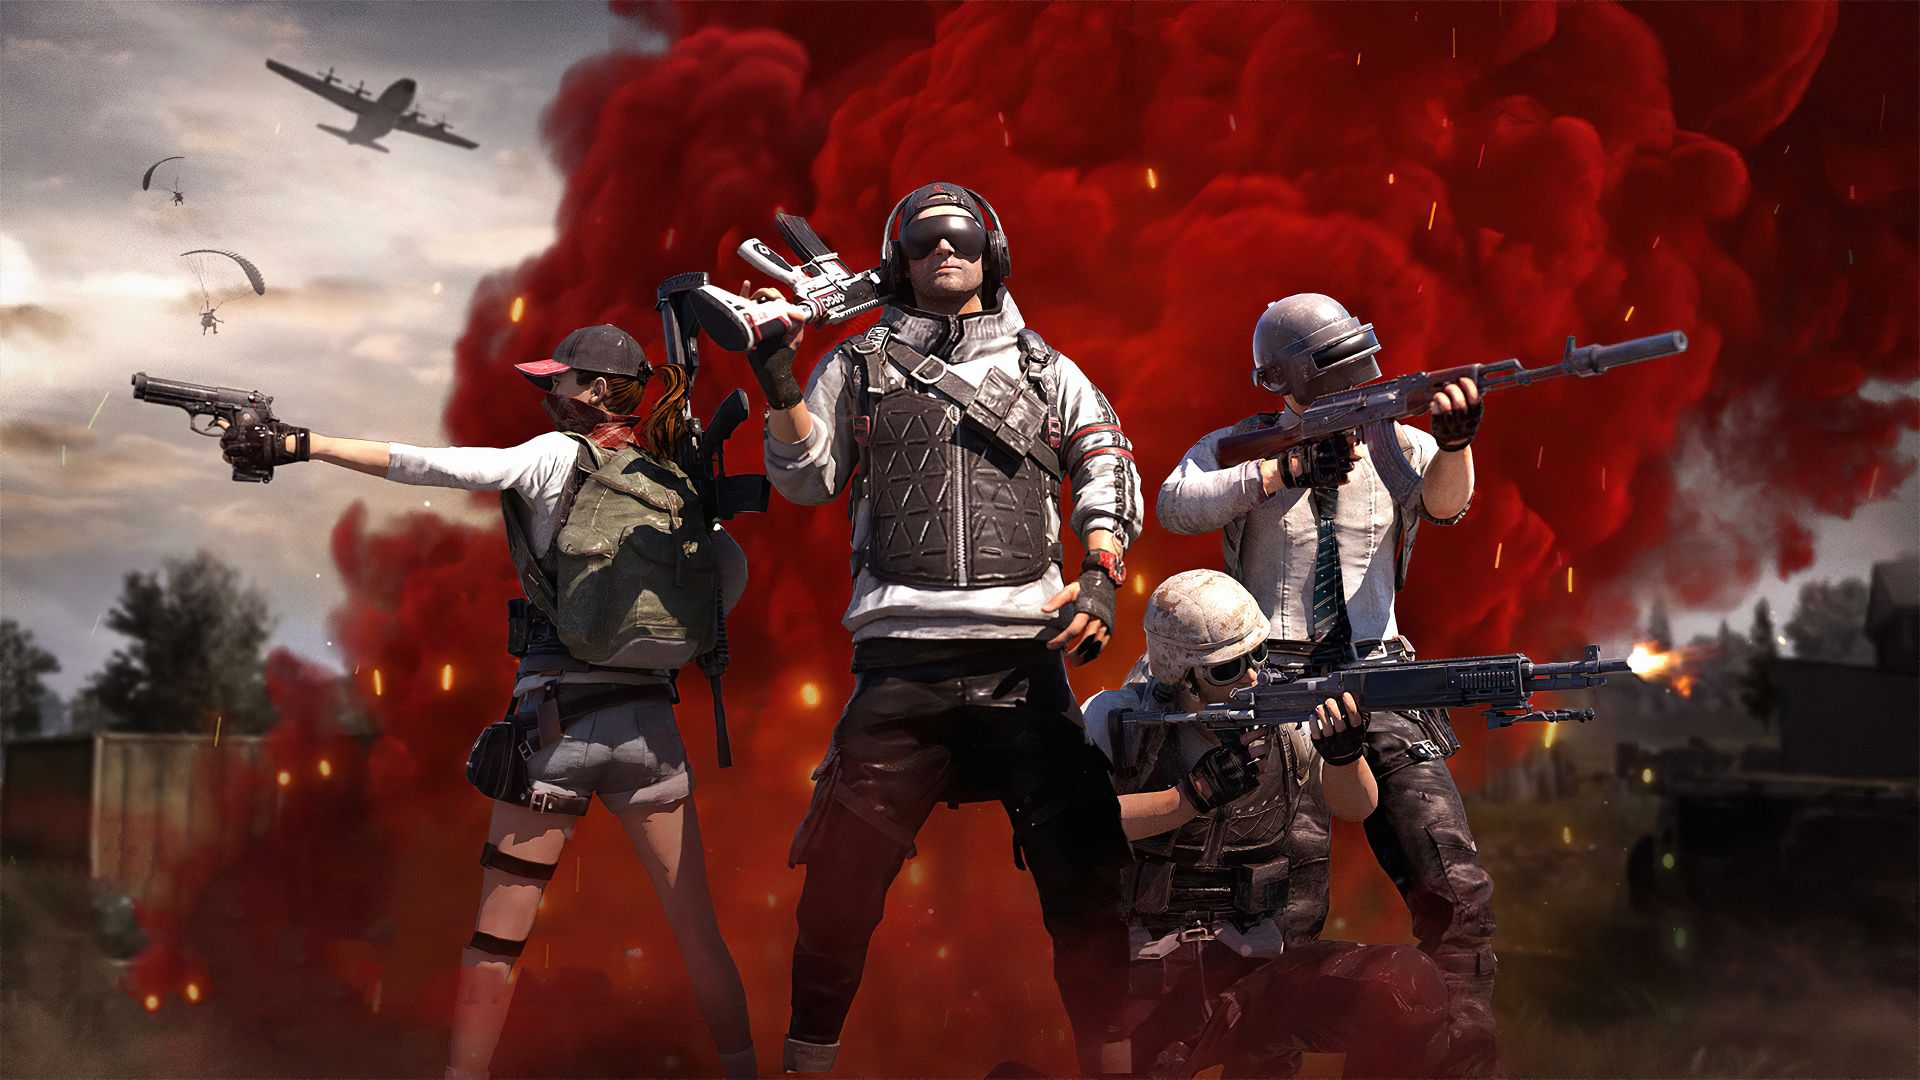 Pubg 1080p Wallpapers Top Free Pubg 1080p Backgrounds Wallpaperaccess